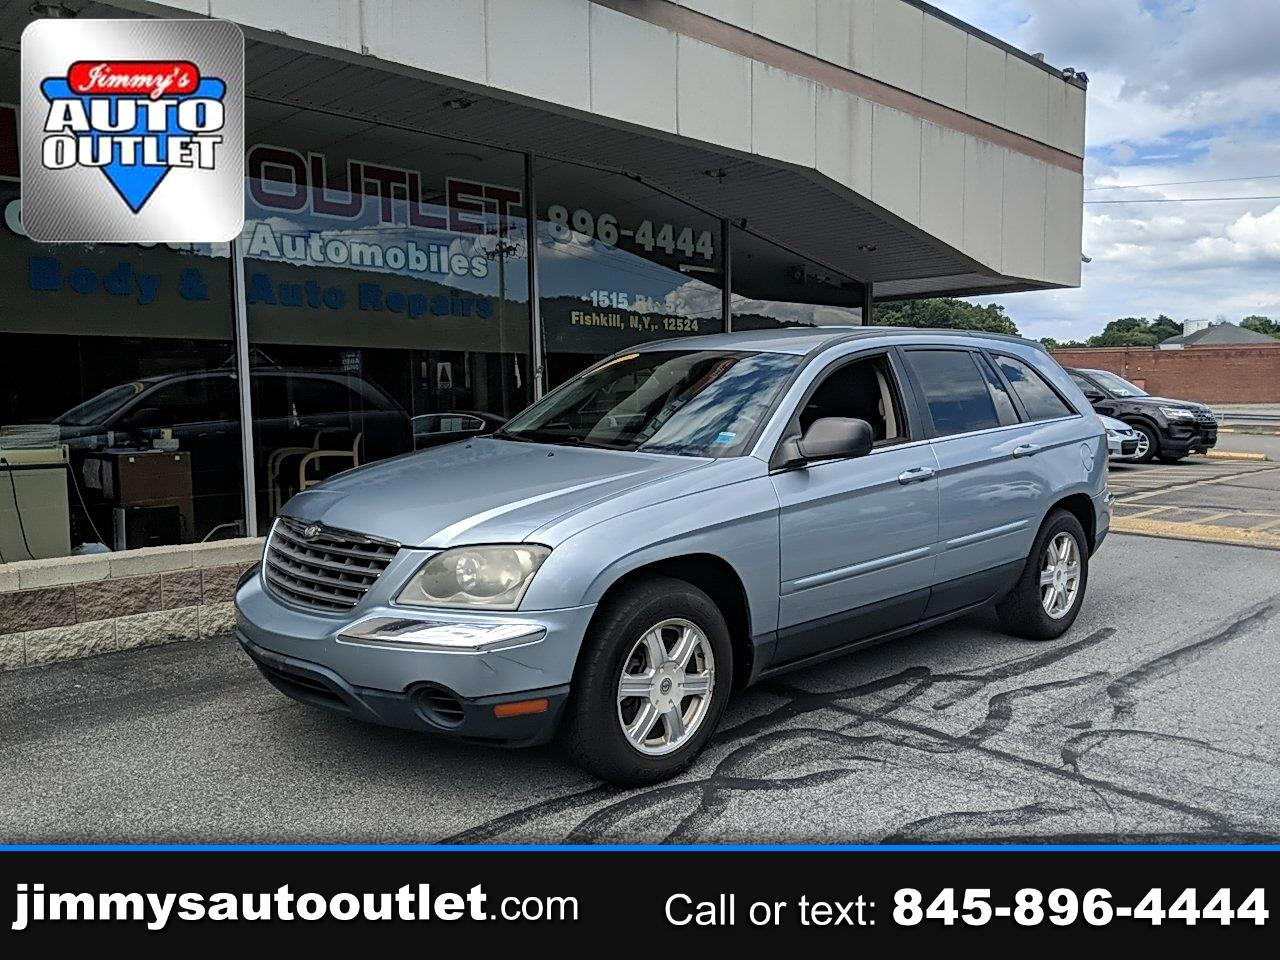 Chrysler Pacifica 4dr Wgn Touring FWD 2006